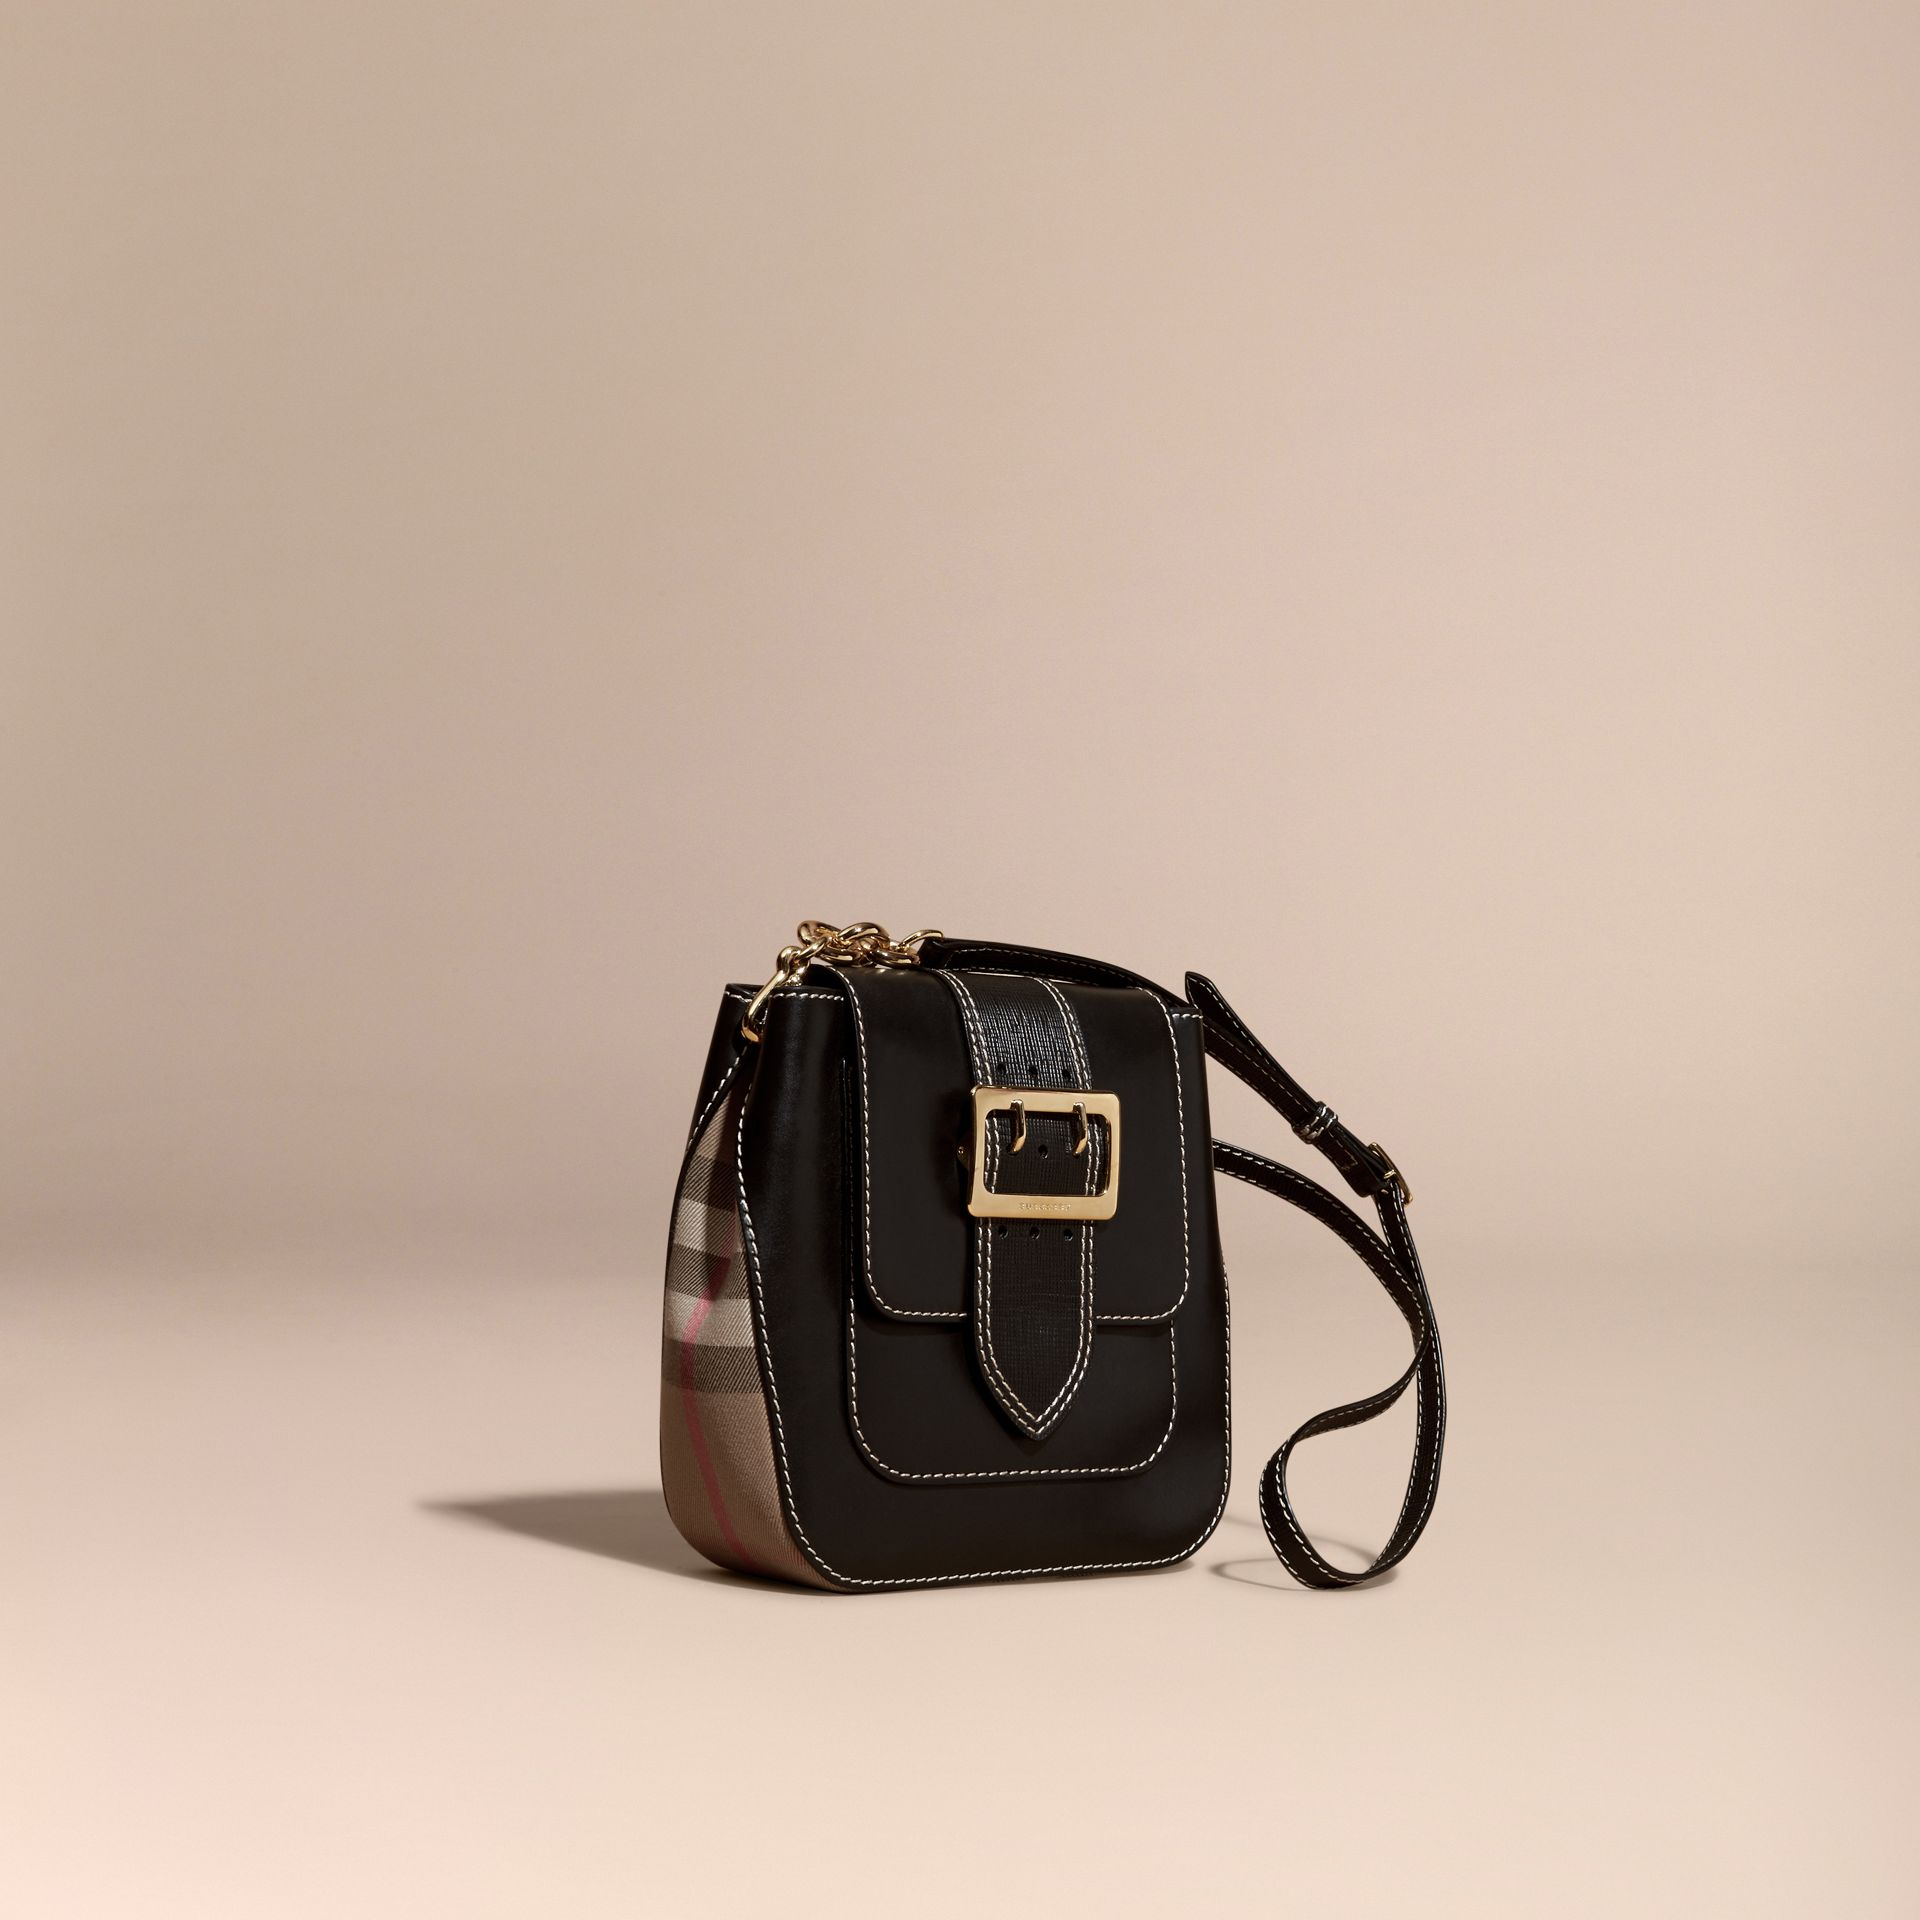 Black The Medium Buckle Bag – Square in Leather and House Check - gallery image 1